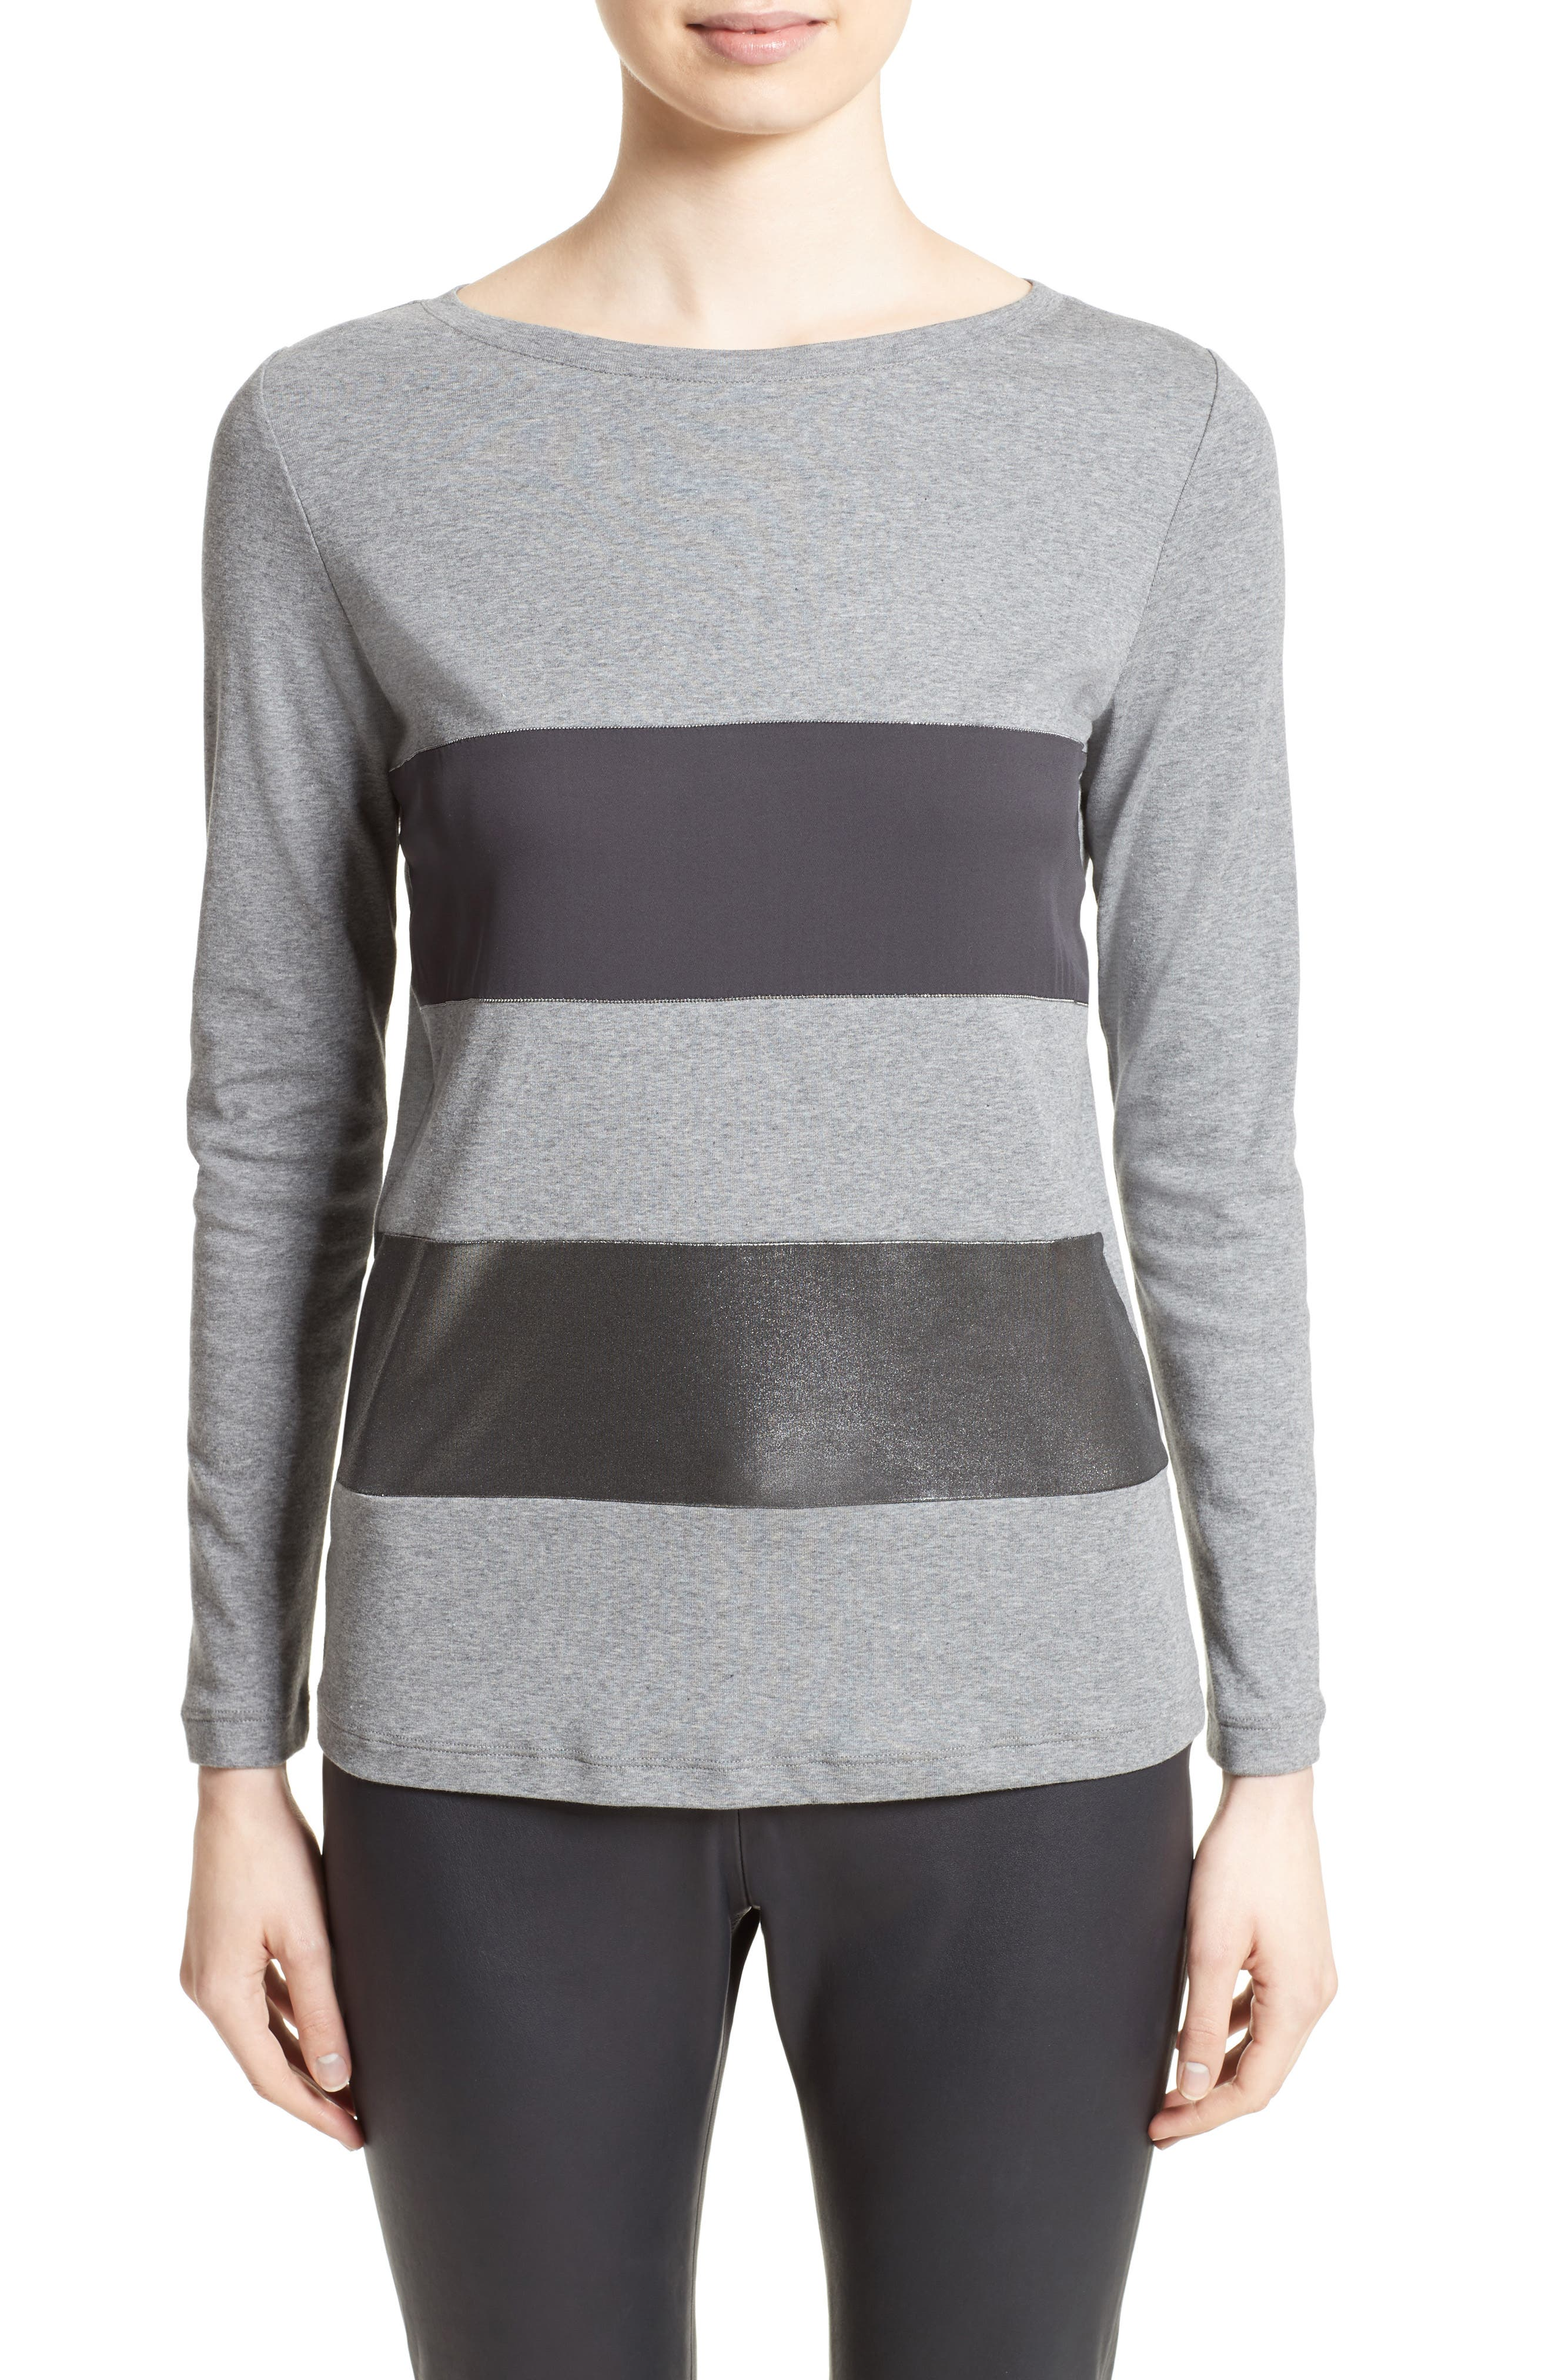 Fabiana Filippi Contrast Panel Stretch Cotton Jersey Top